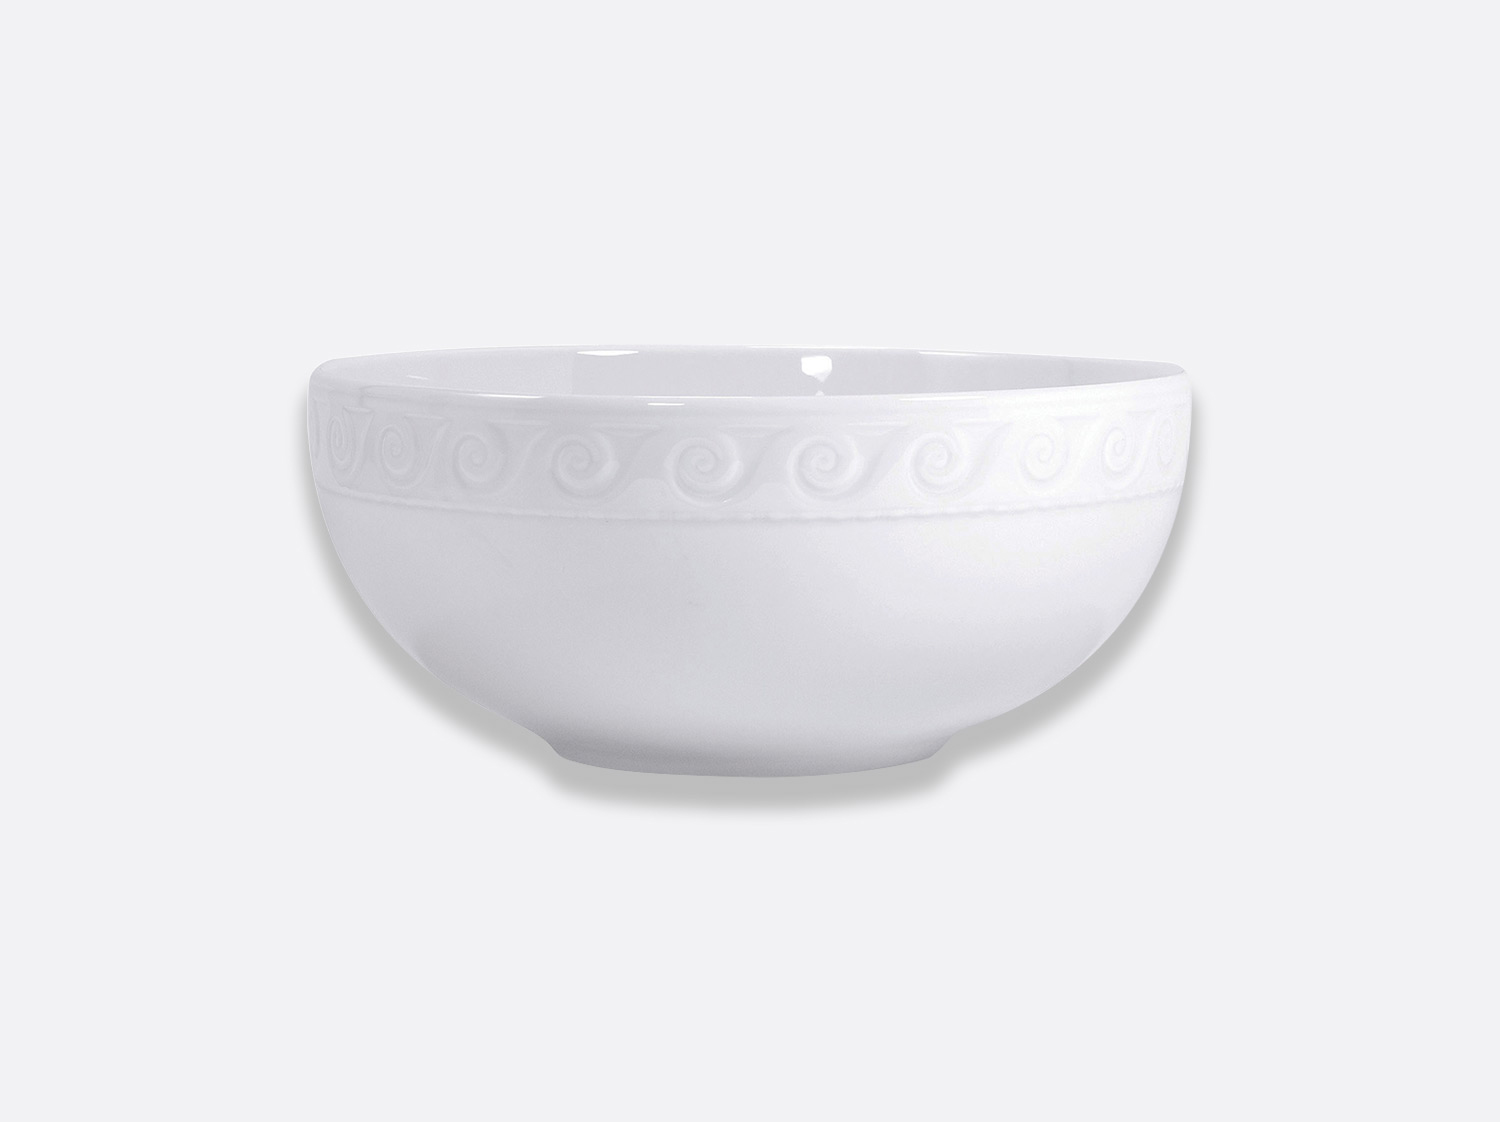 China Salad bowl - large 3,5 l of the collection Louvre | Bernardaud